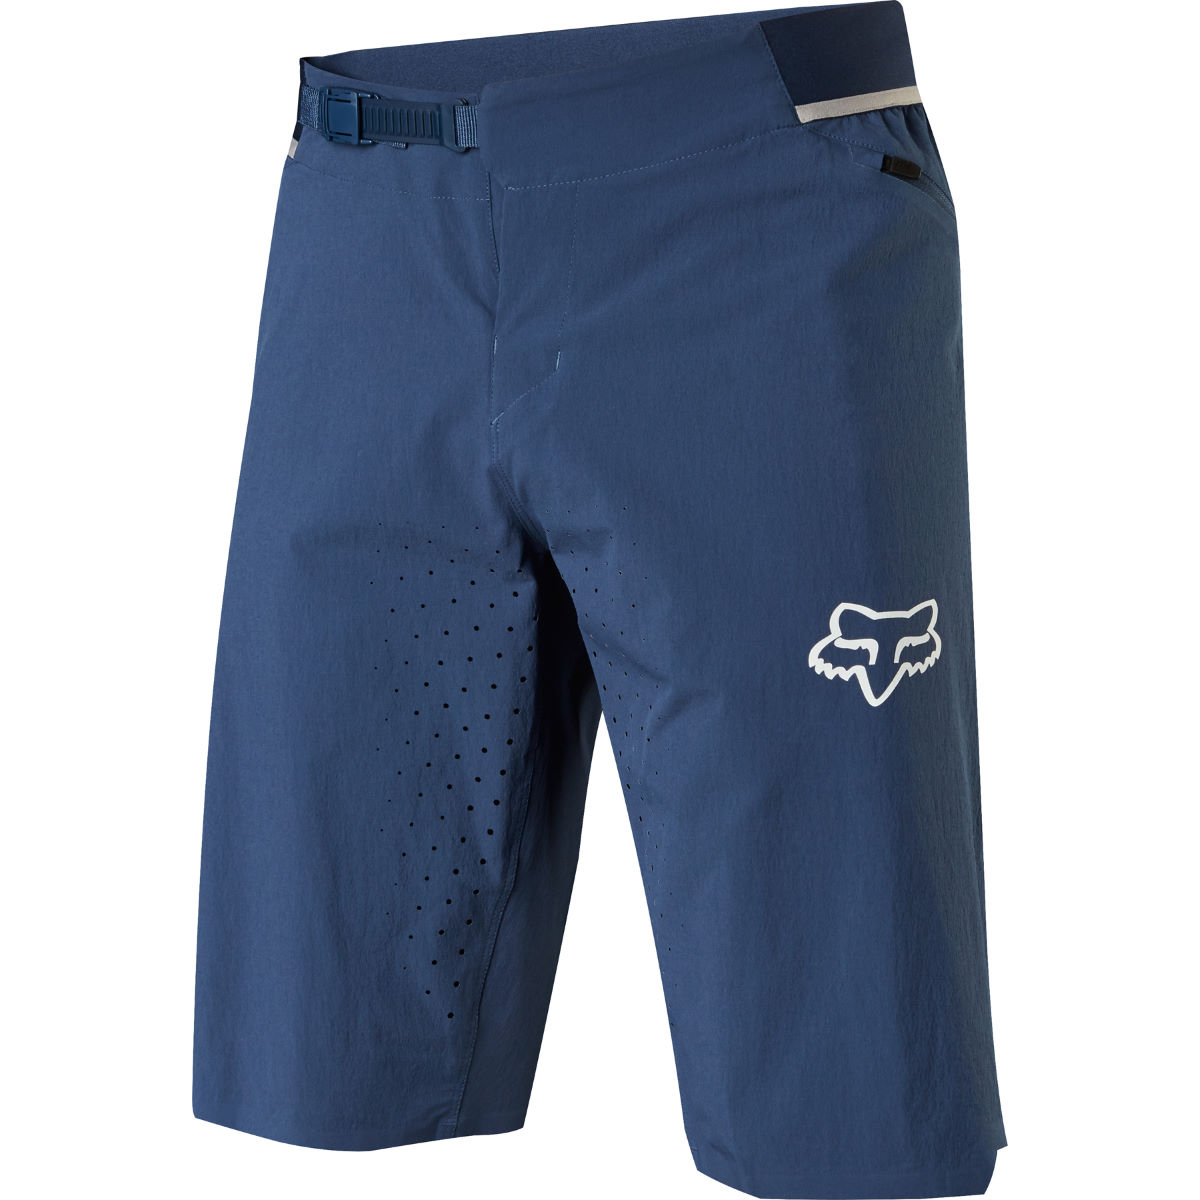 Fox Racing Attack Shorts (No Liner) - 30 Light Indigo